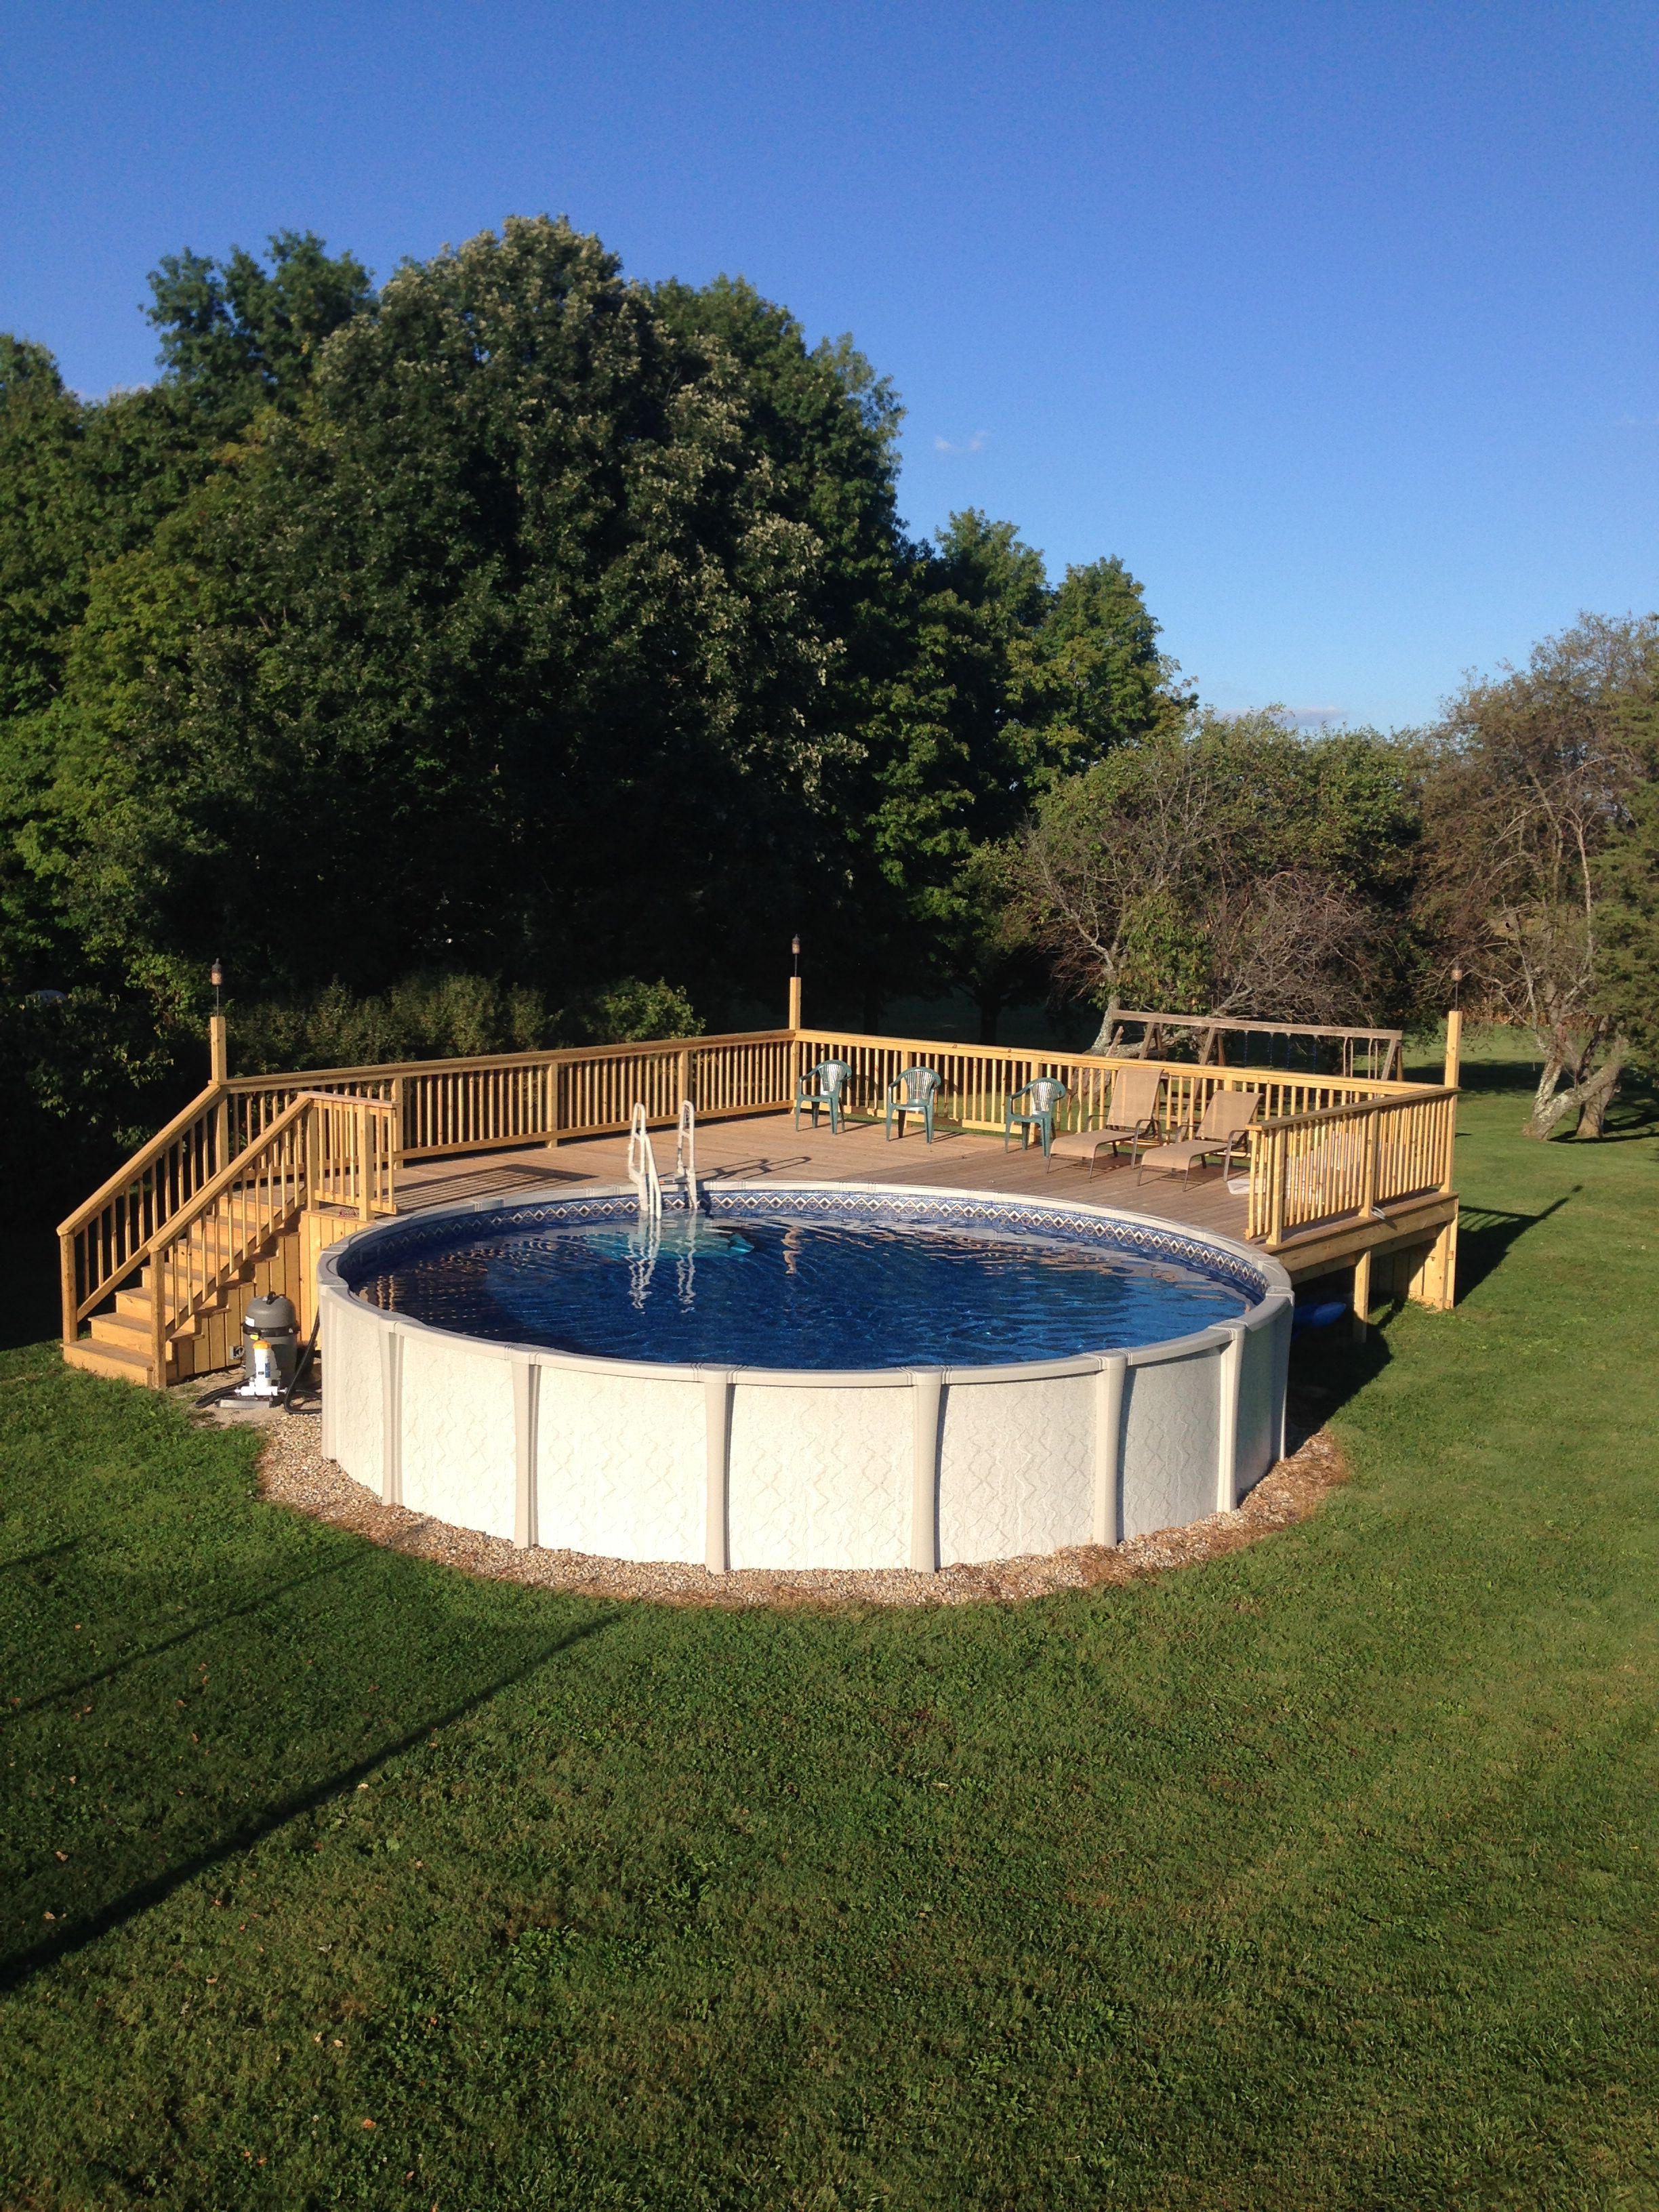 Pool Frame Rund Above Ground Pool Deck For 24 Ft Round Pool Deck Is 28x28 Pool